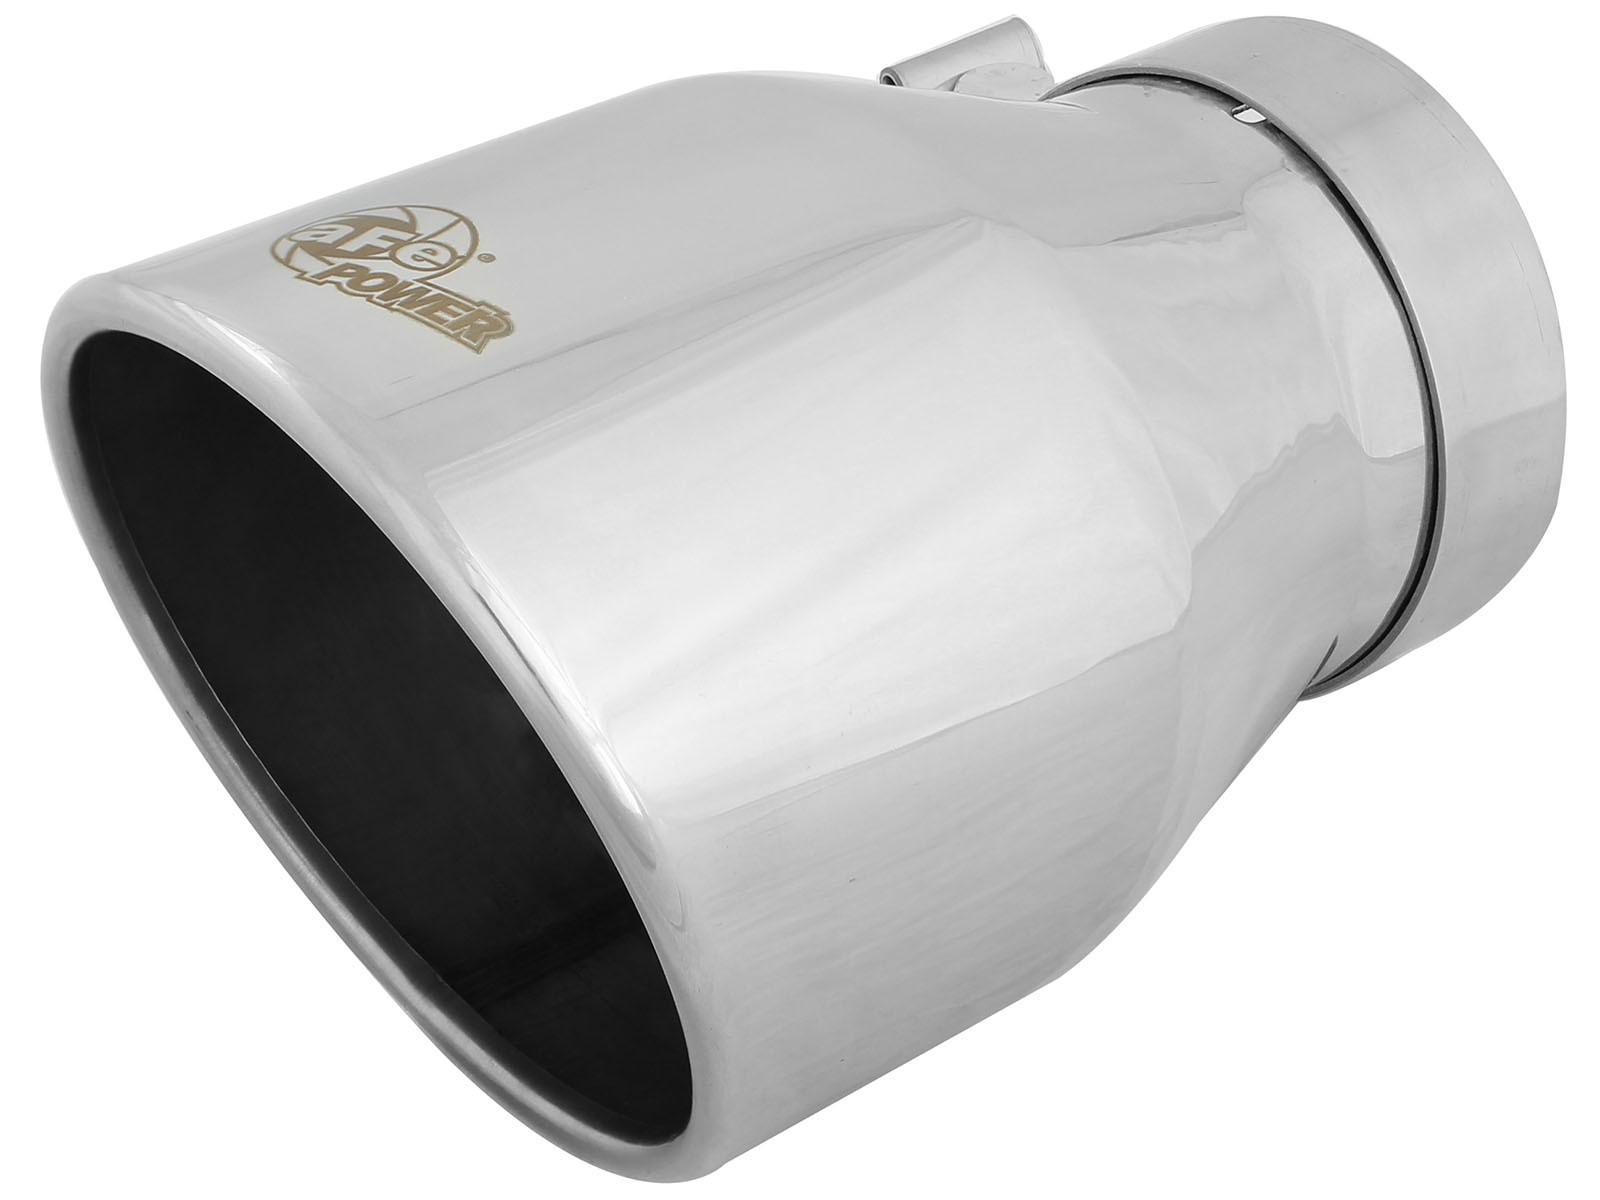 "aFe POWER 49T40604-P09 MACH Force-Xp 4"" 304 Stainless Steel Exhaust Tip"